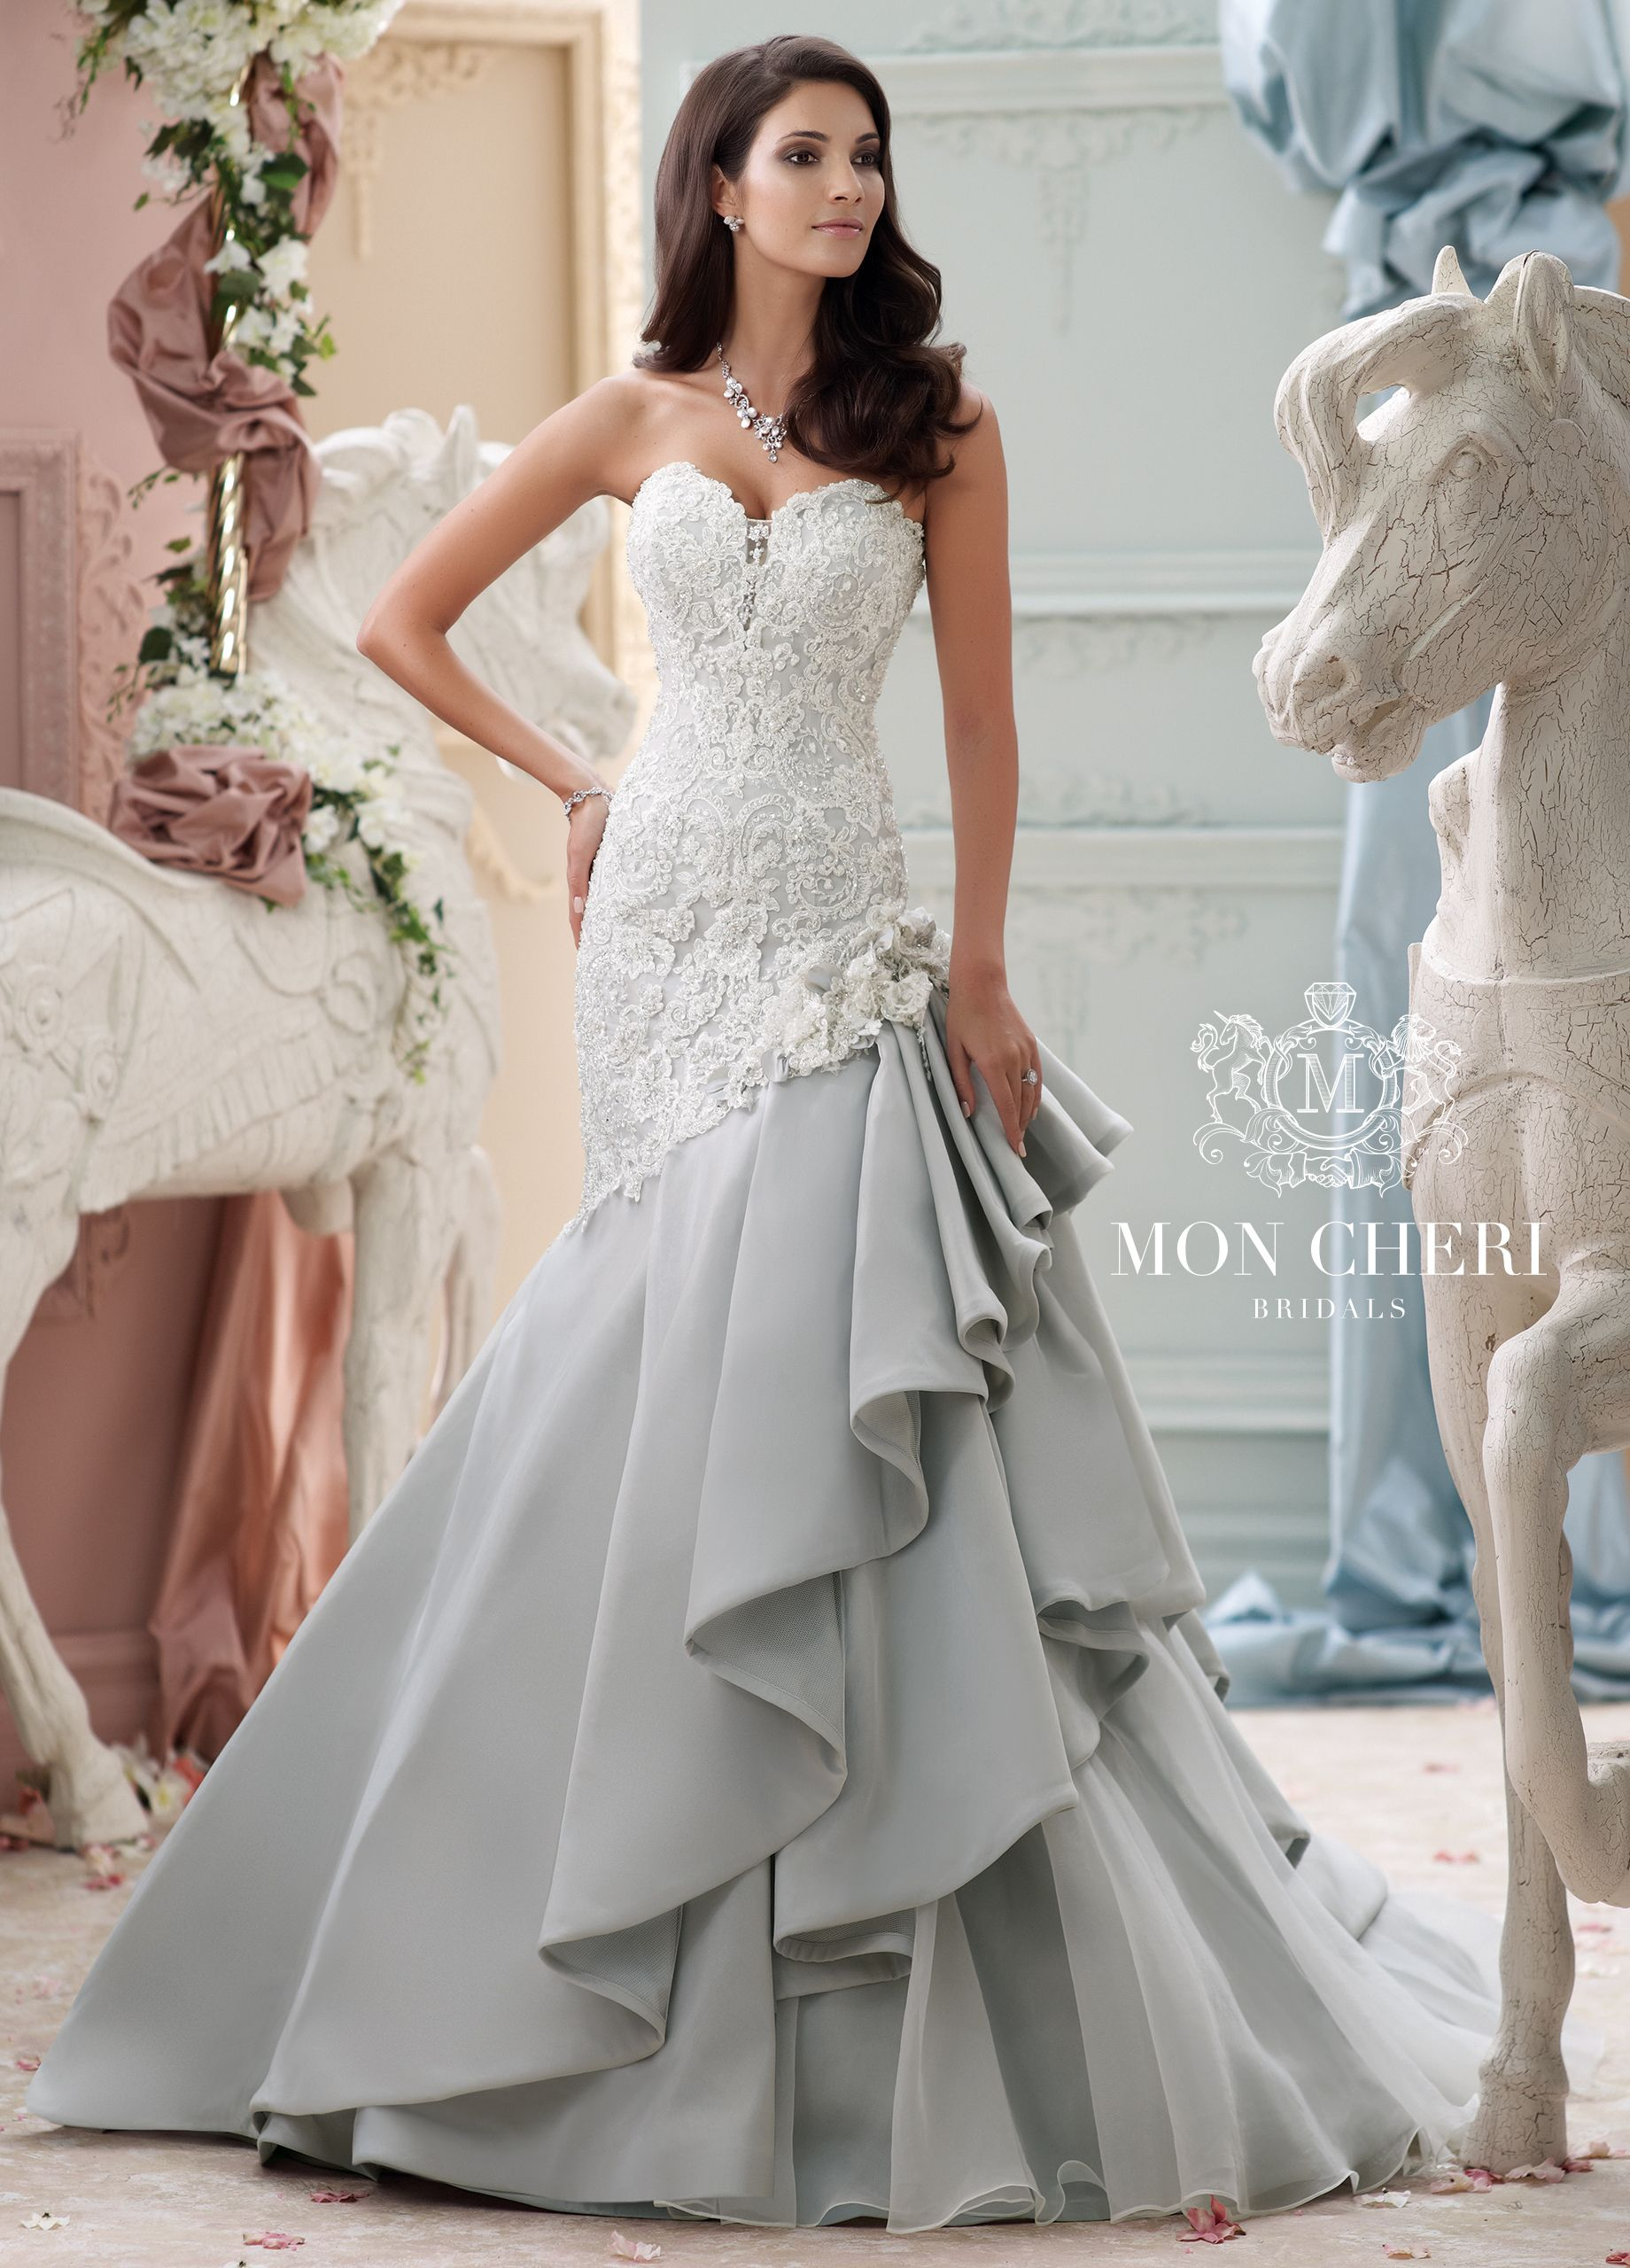 Unique wedding dresses fall martin thornburg wedding ideas